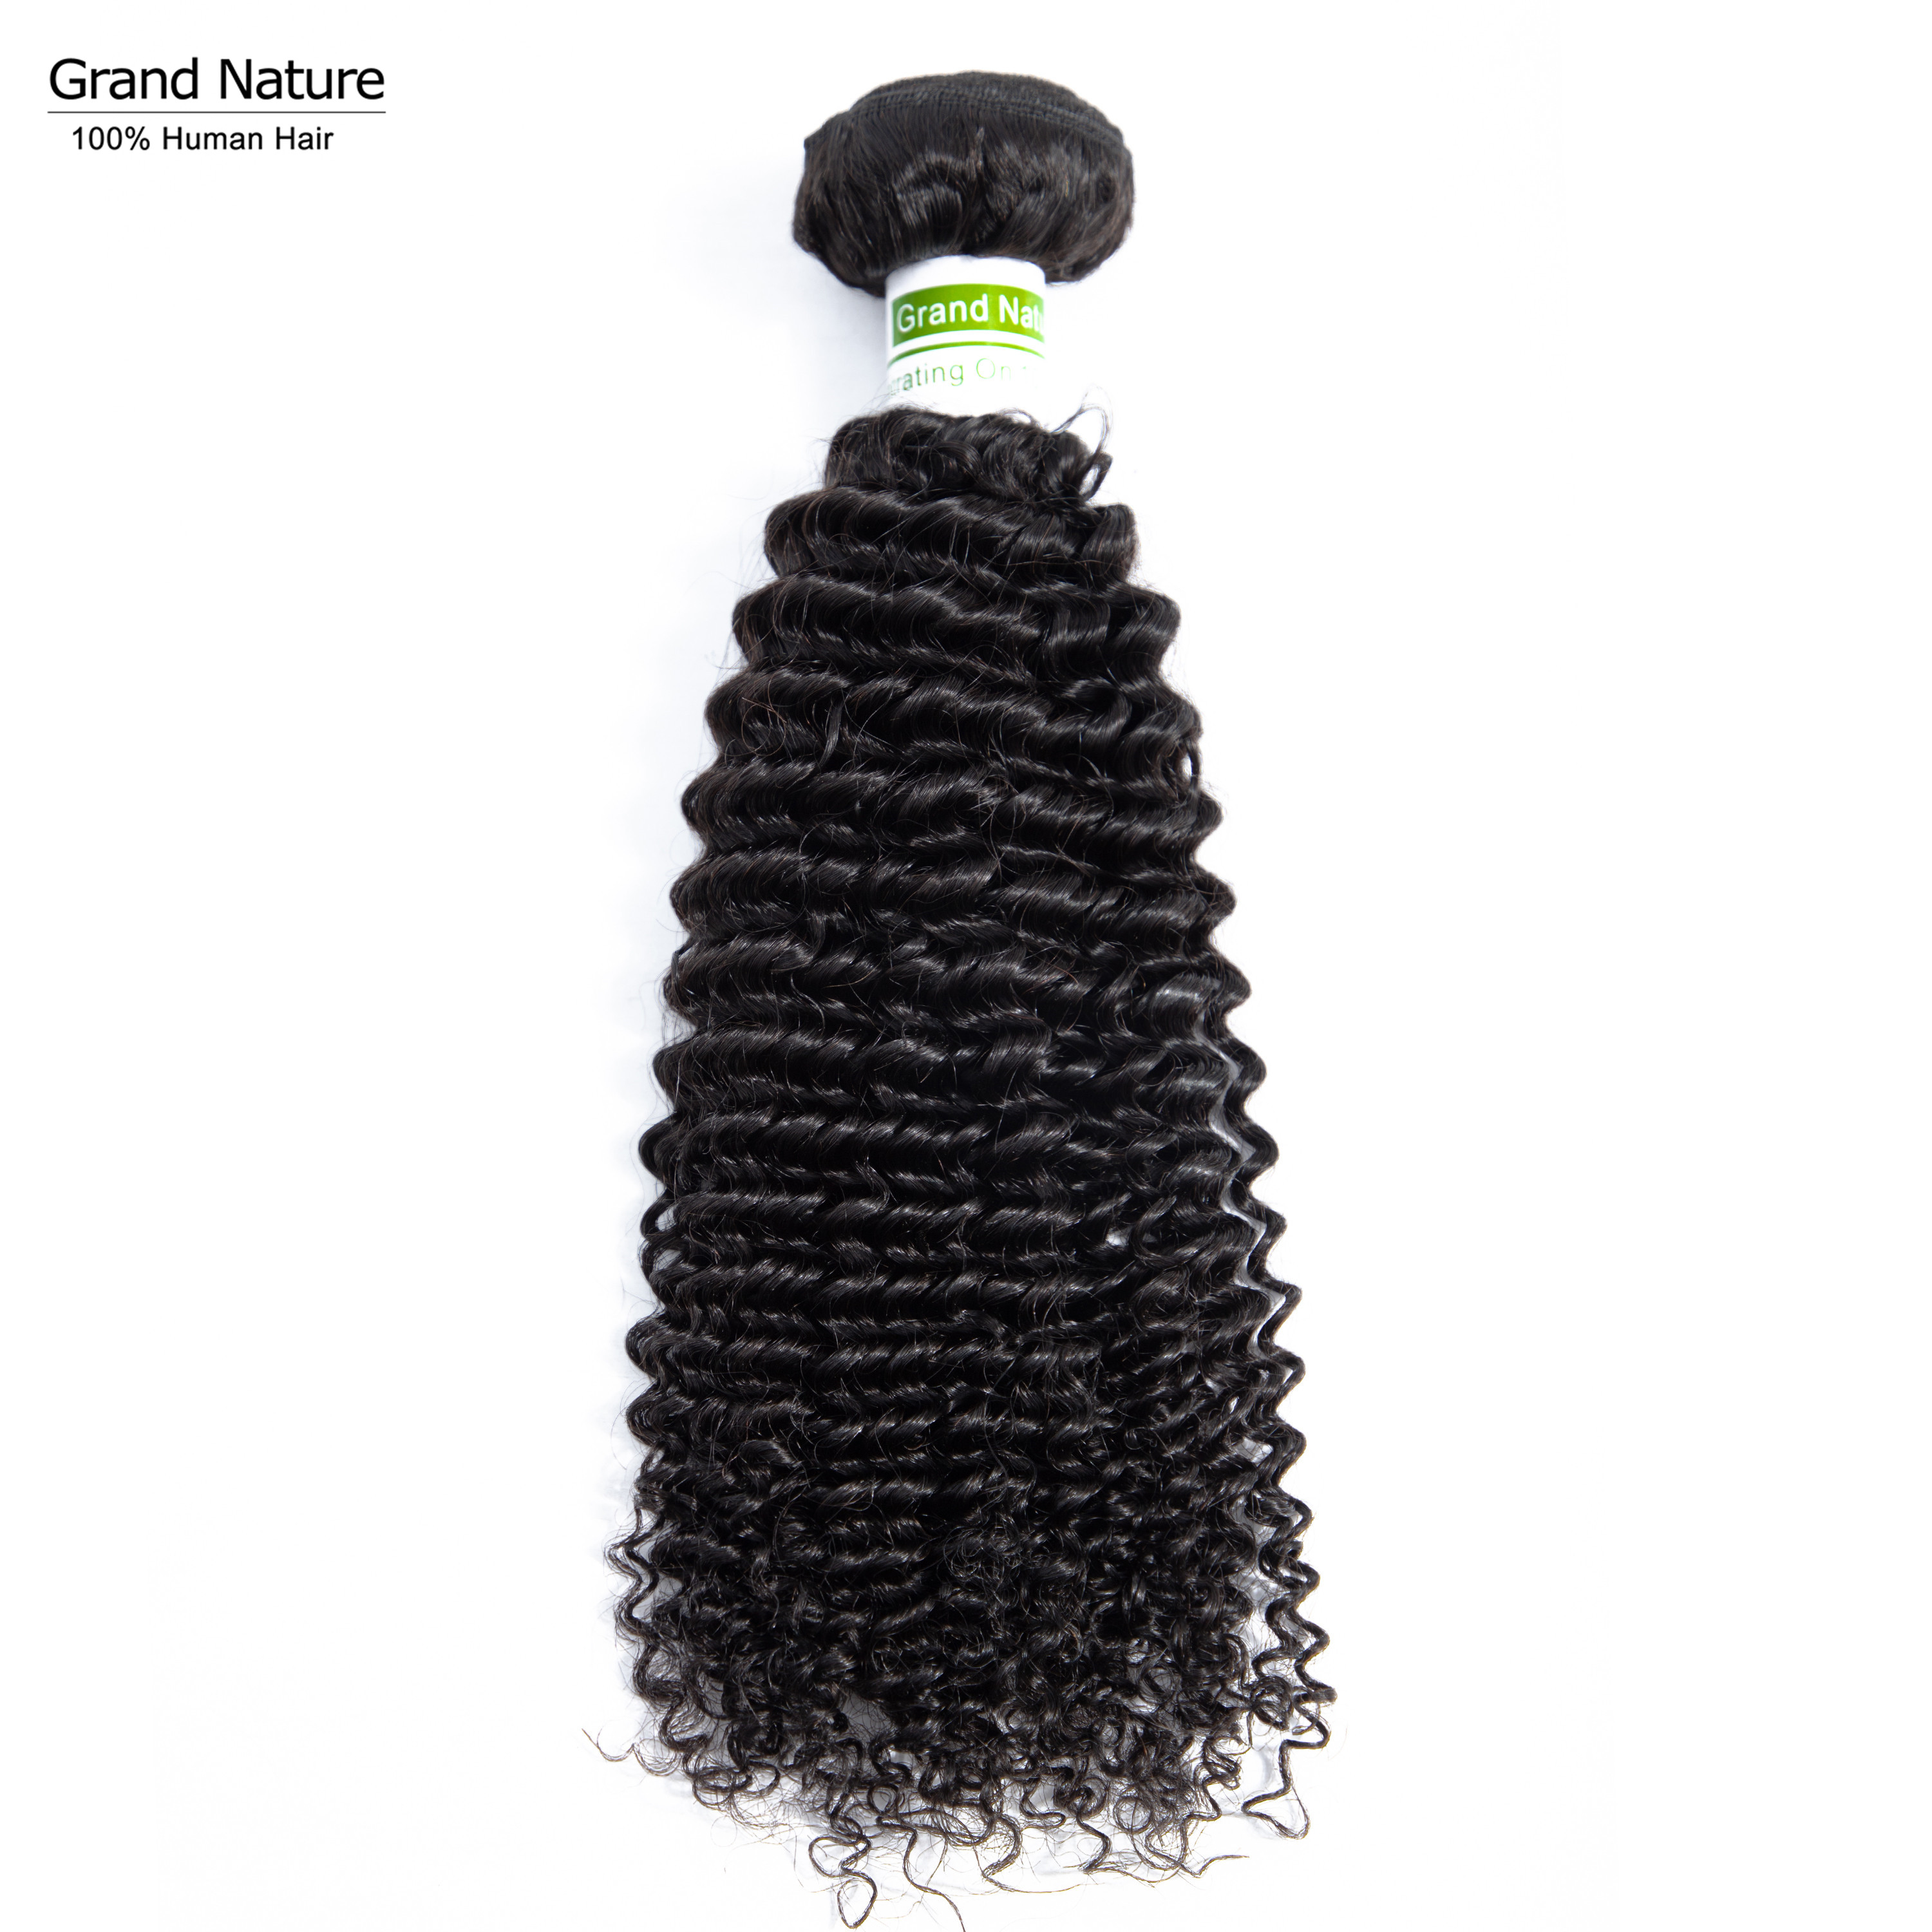 Grand Nature 100% Peruvian Virgin Hair Weaves 100% Afro Curly Human Hair One Bundle Kinky Curly One Donor Can Be Dyed